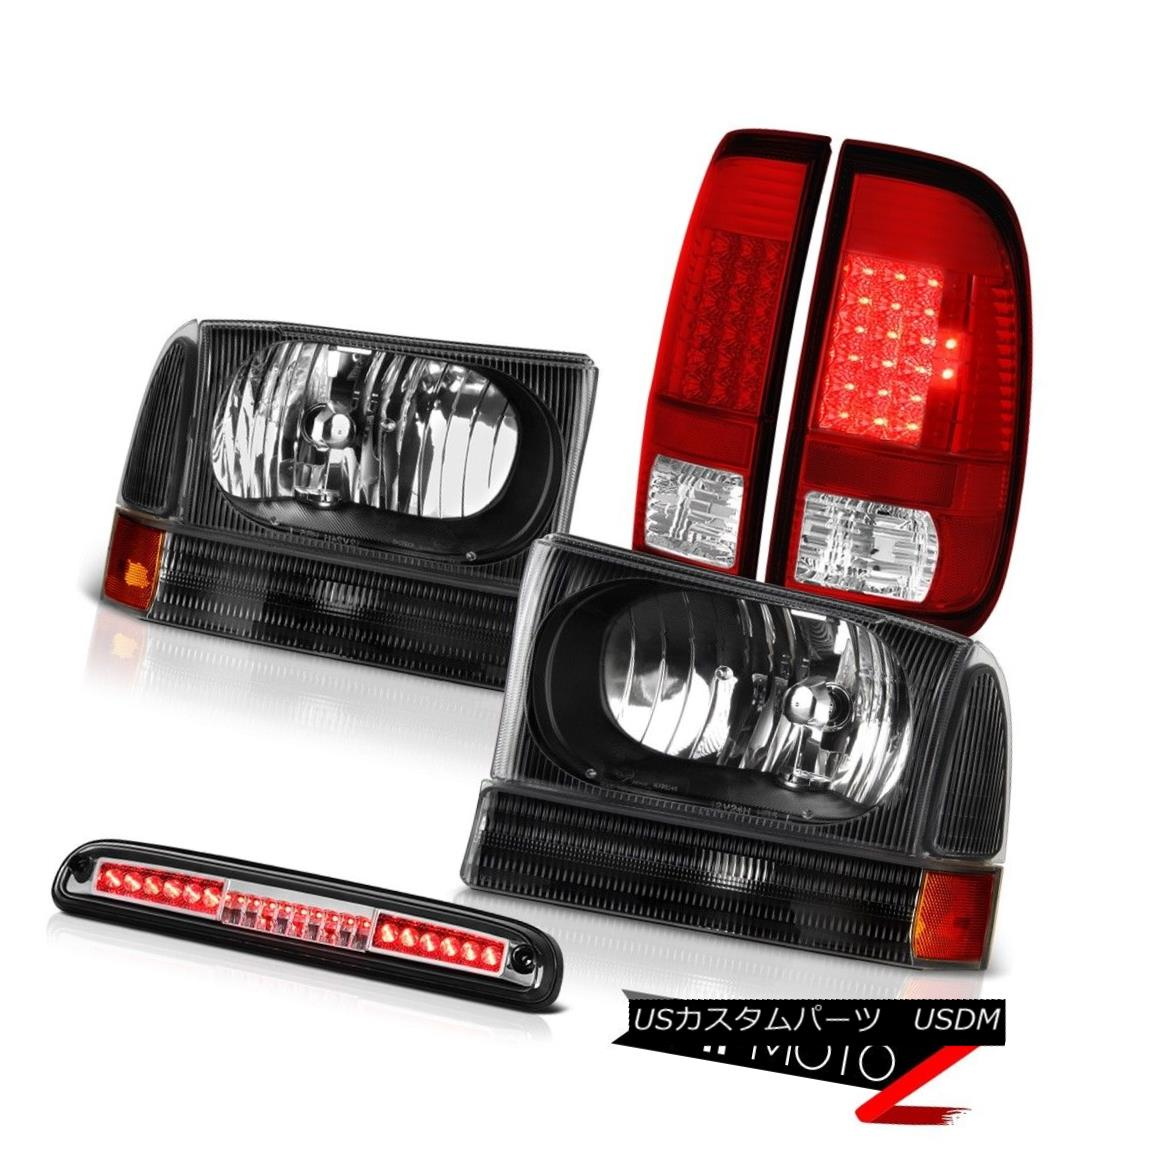 テールライト 99-04 Ford SuperDuty Black Headlights Bright L.E.D Taillamps Euro Third Brake 99-04 Ford SuperDuty BlackヘッドライトBright L.E.D Taillamps Euro Third Brake